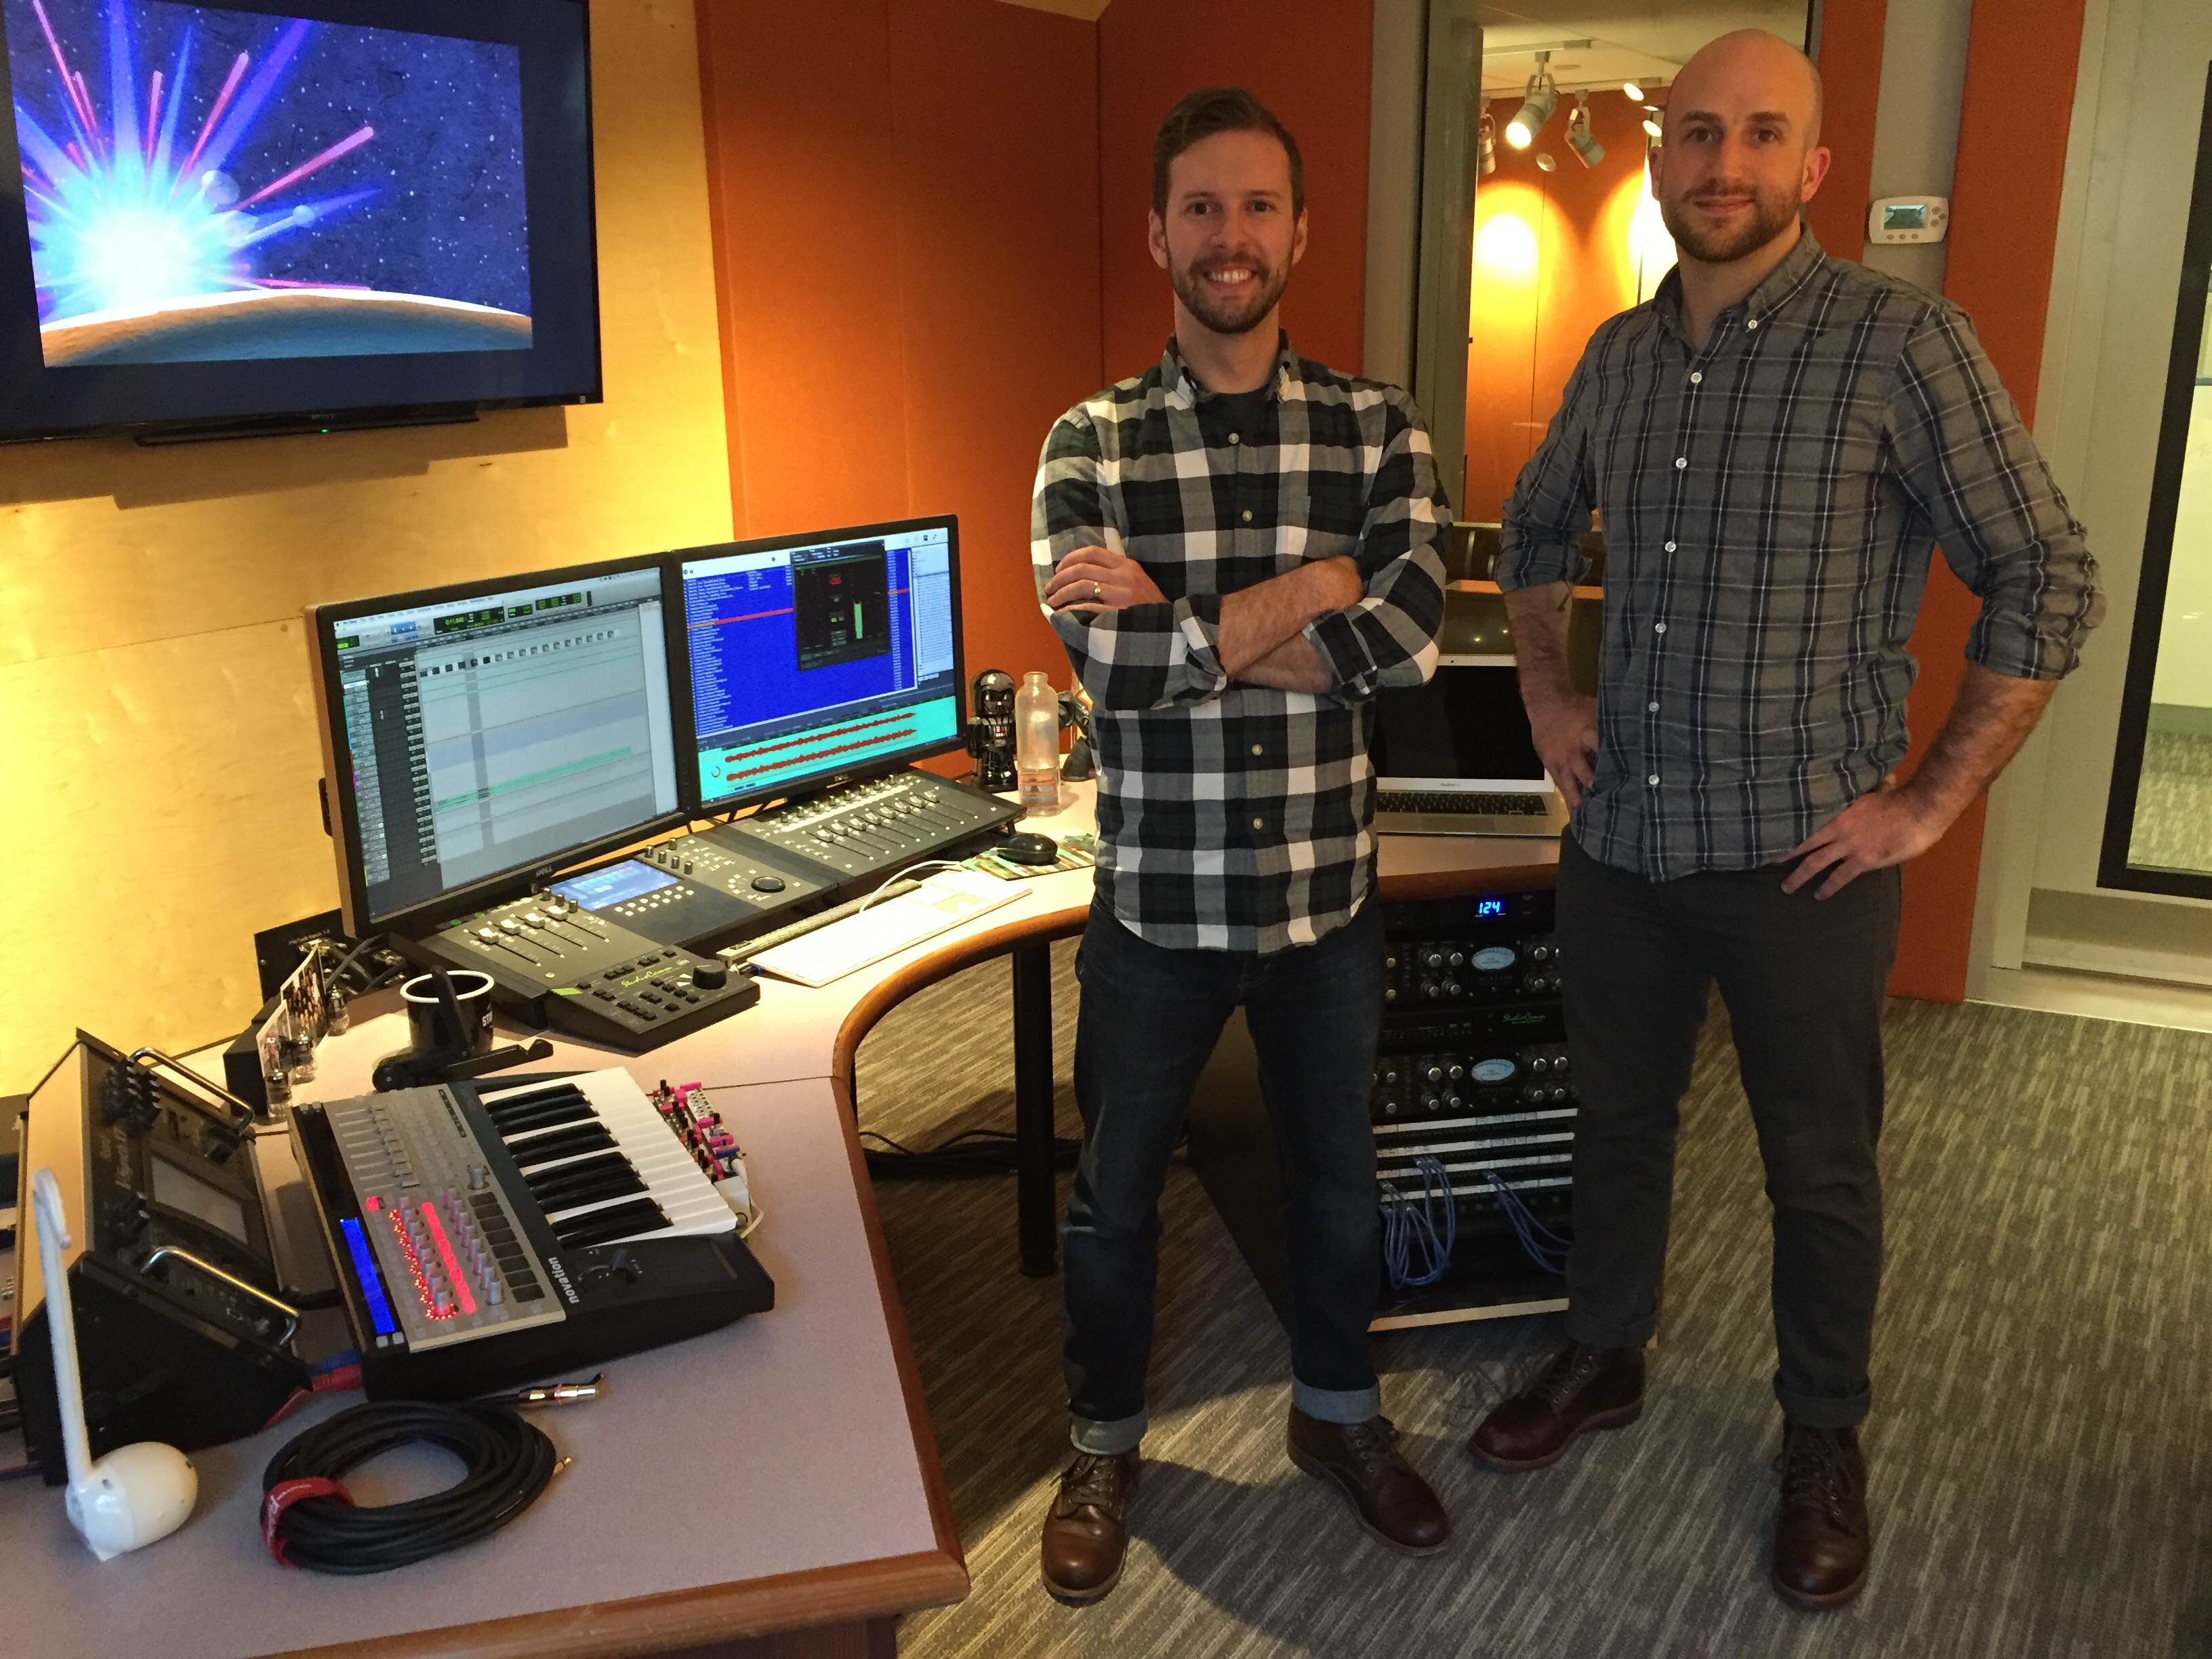 Kevin Dusablon (left) and Mike Forst (right) standing together in Pullstring's Franklin James Clary studio.